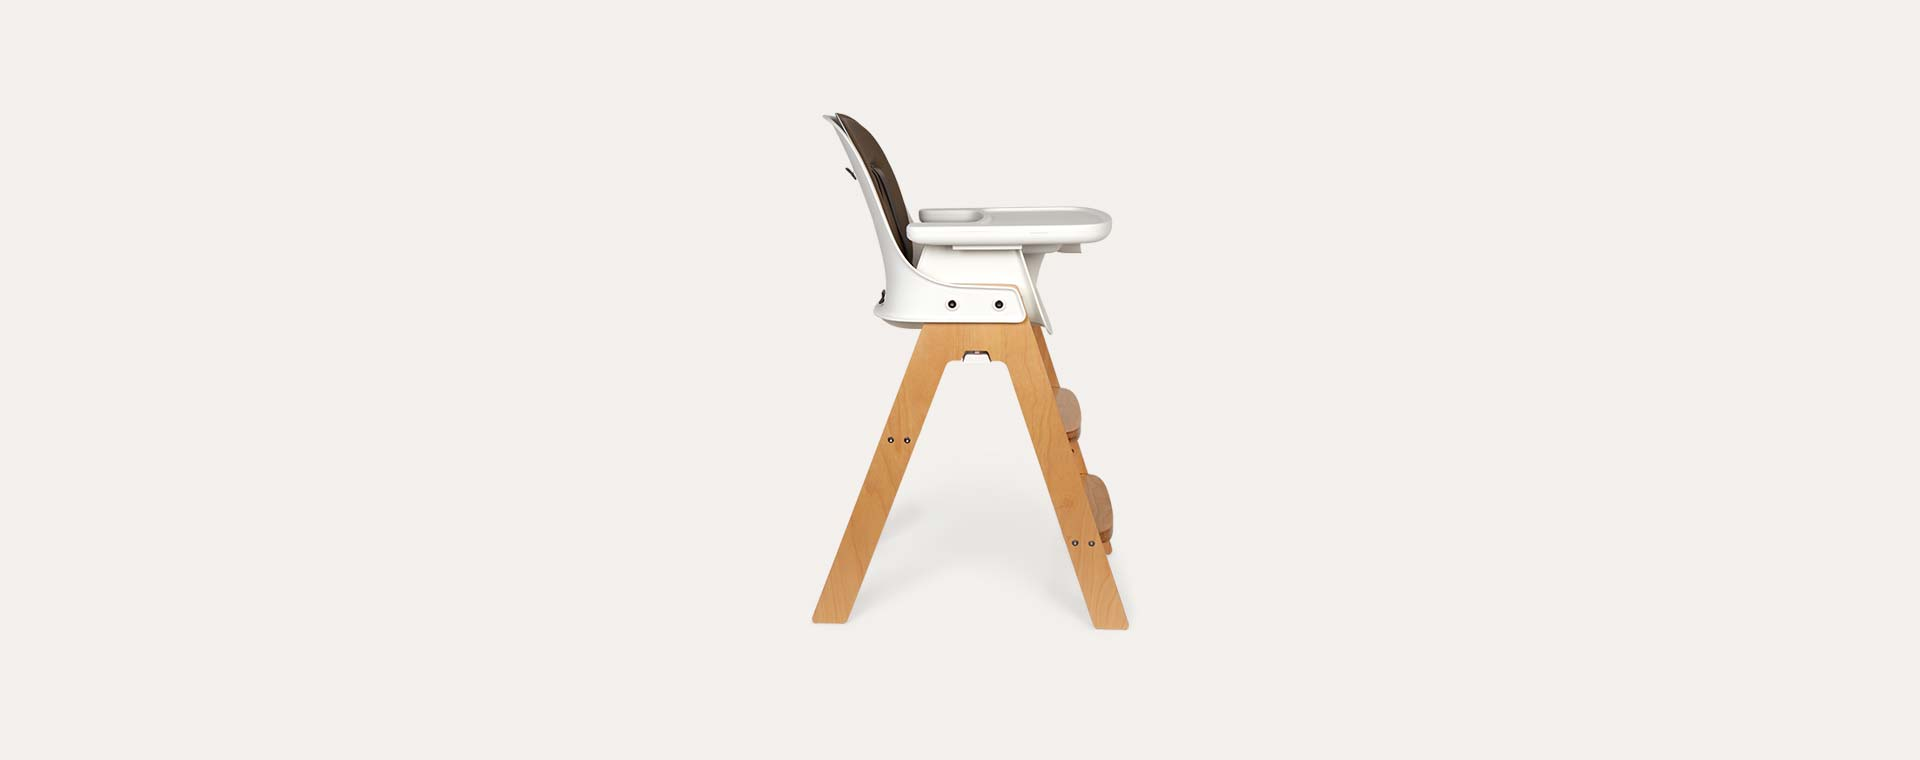 oxo tot high chair recall timber ridge folding sprout and accessories best house interior today buy the highchair at kidly seedling reviews